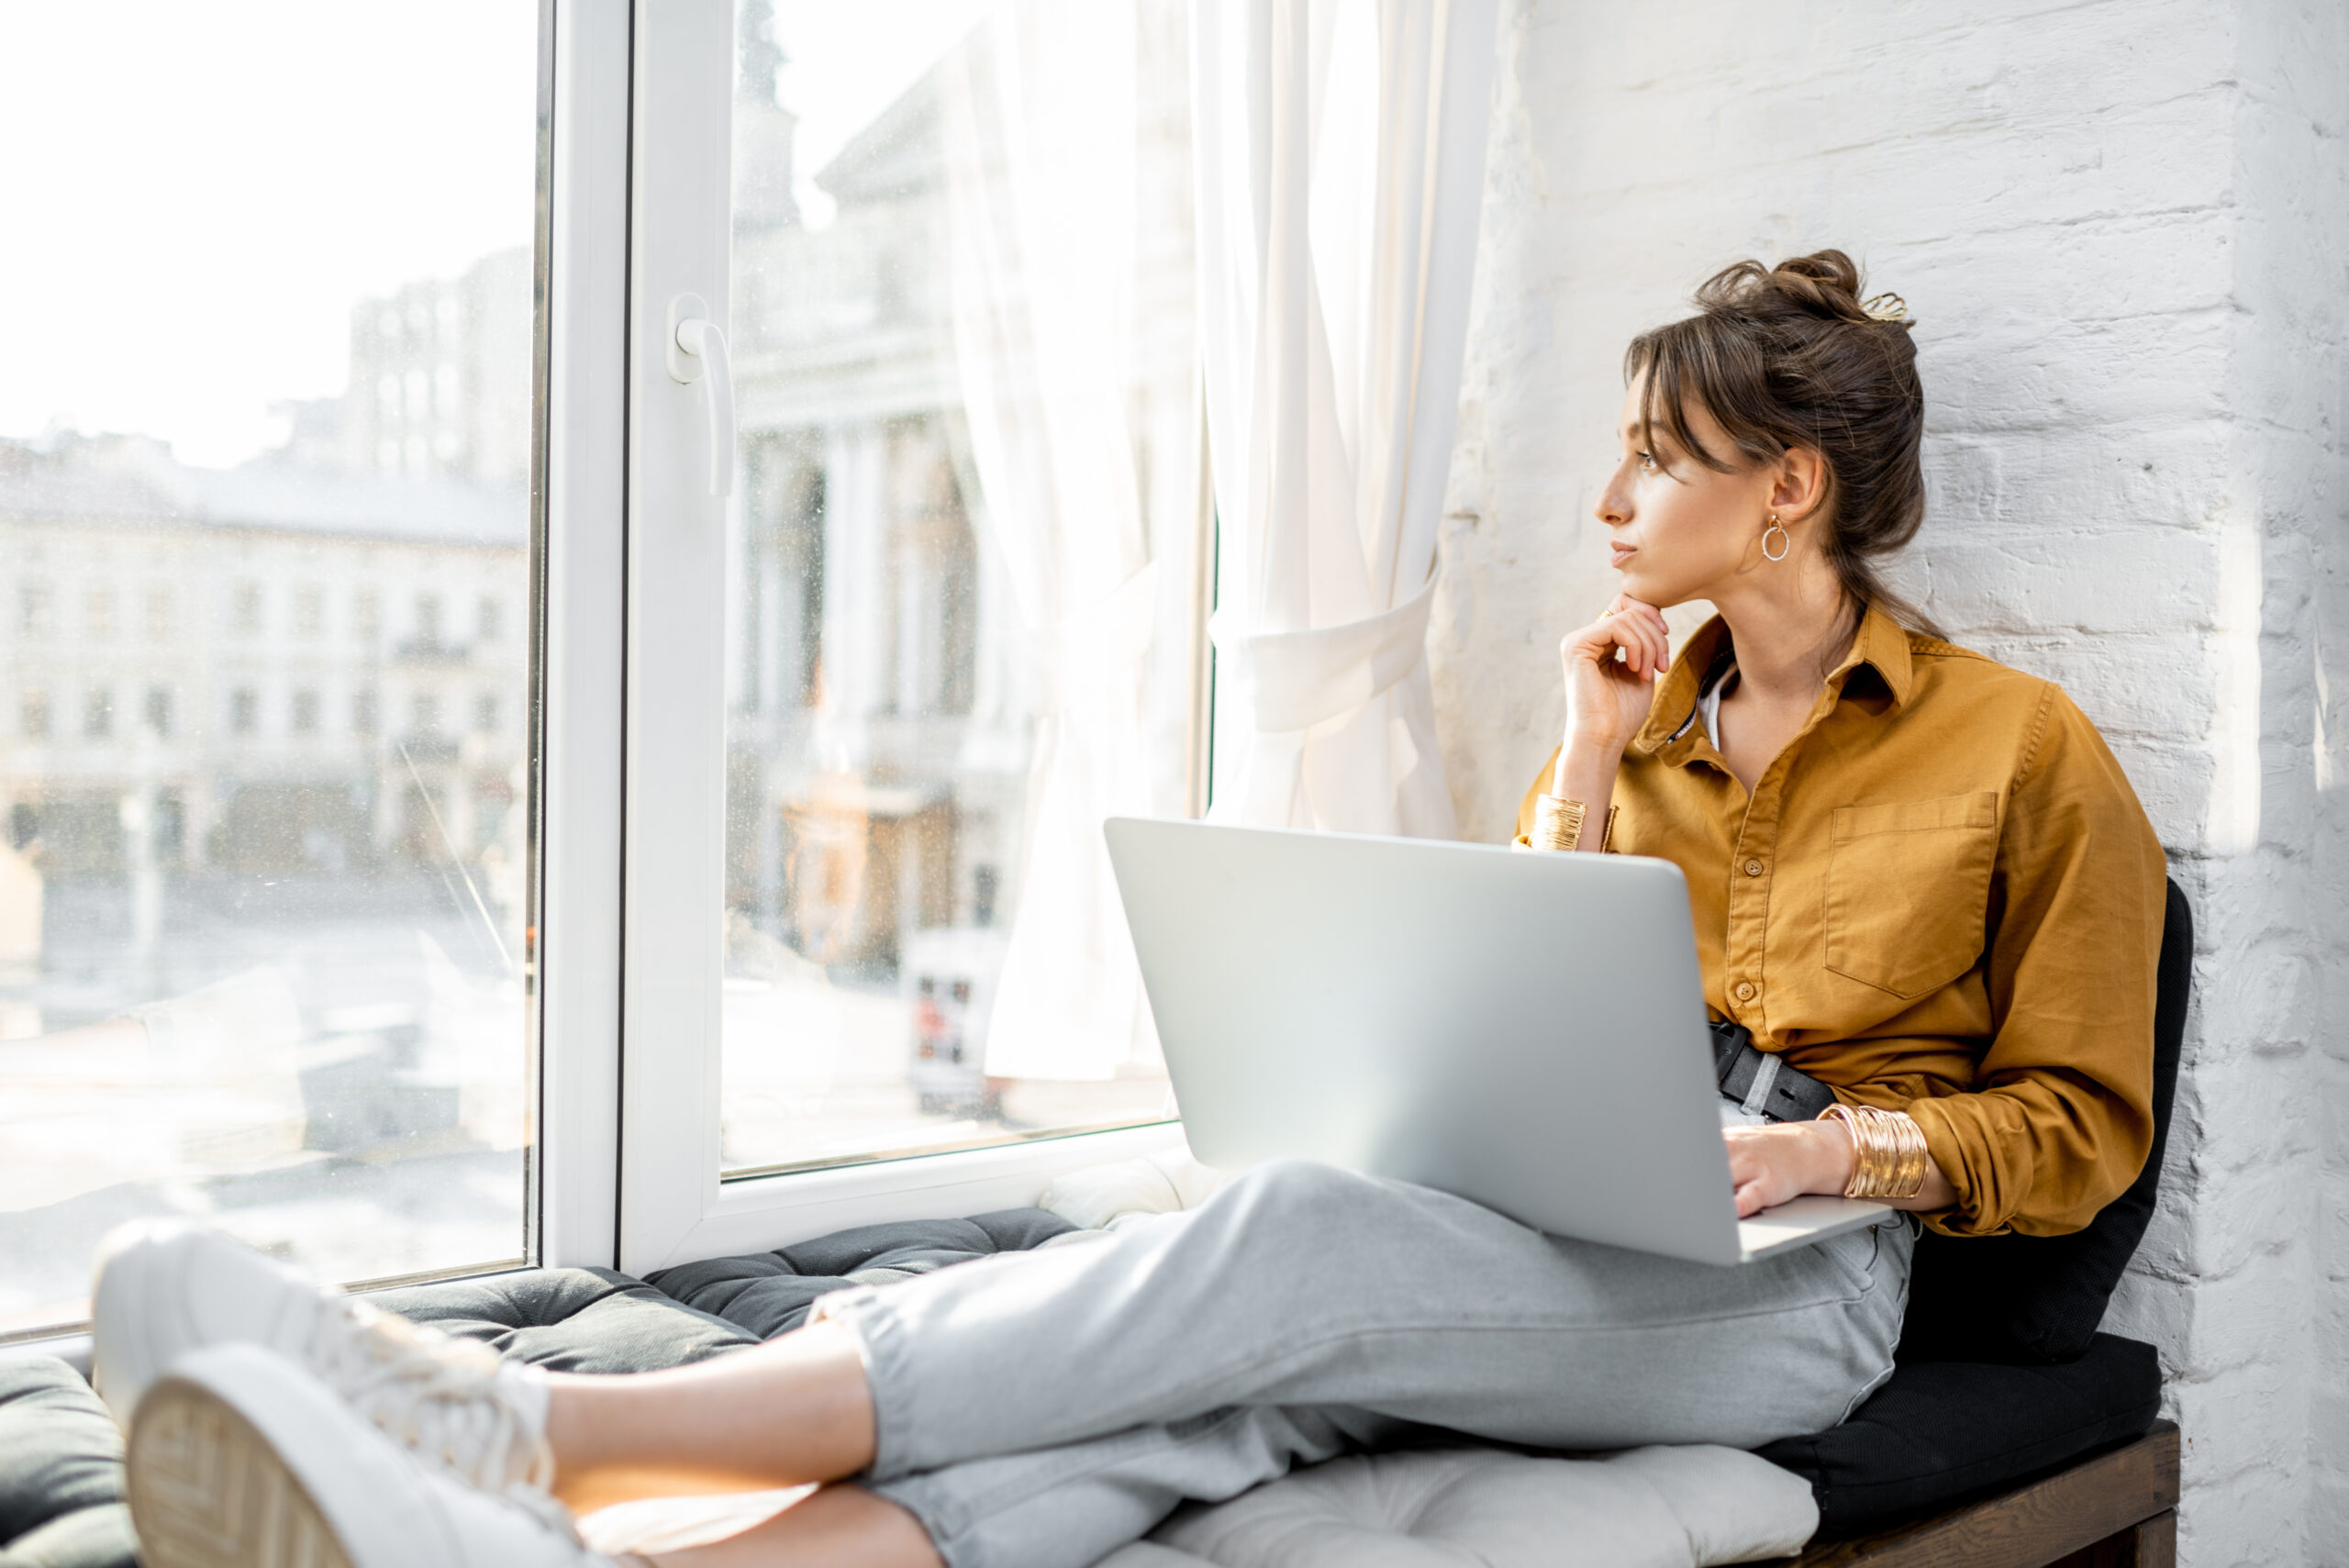 Woman working from home with laptop on the window sill